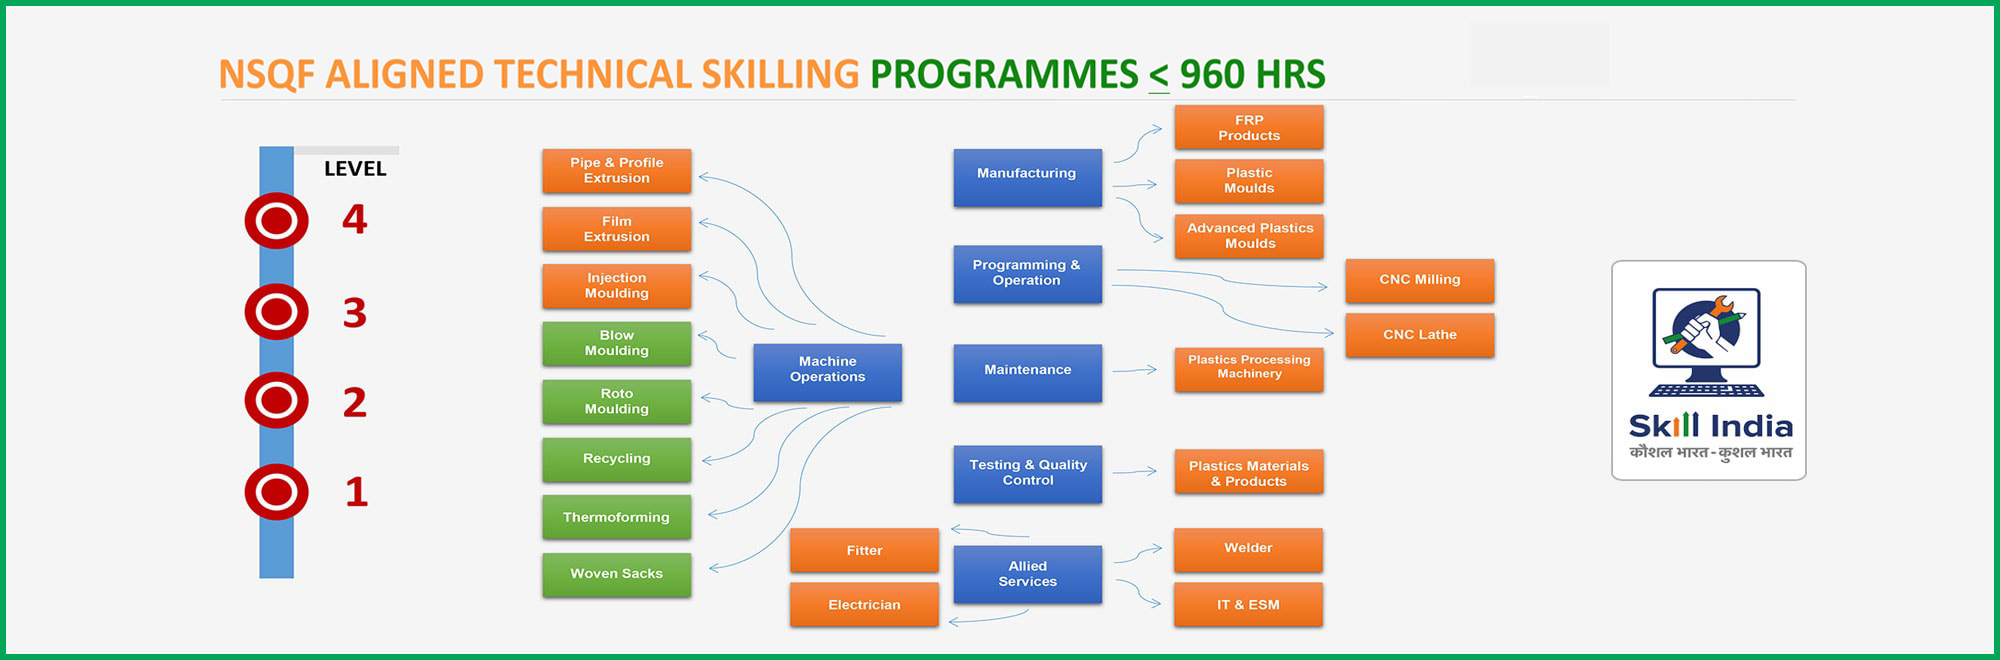 NSQF ALIGNED TECHNICAL SKILLING PROGRAMMES <= 960 HRS